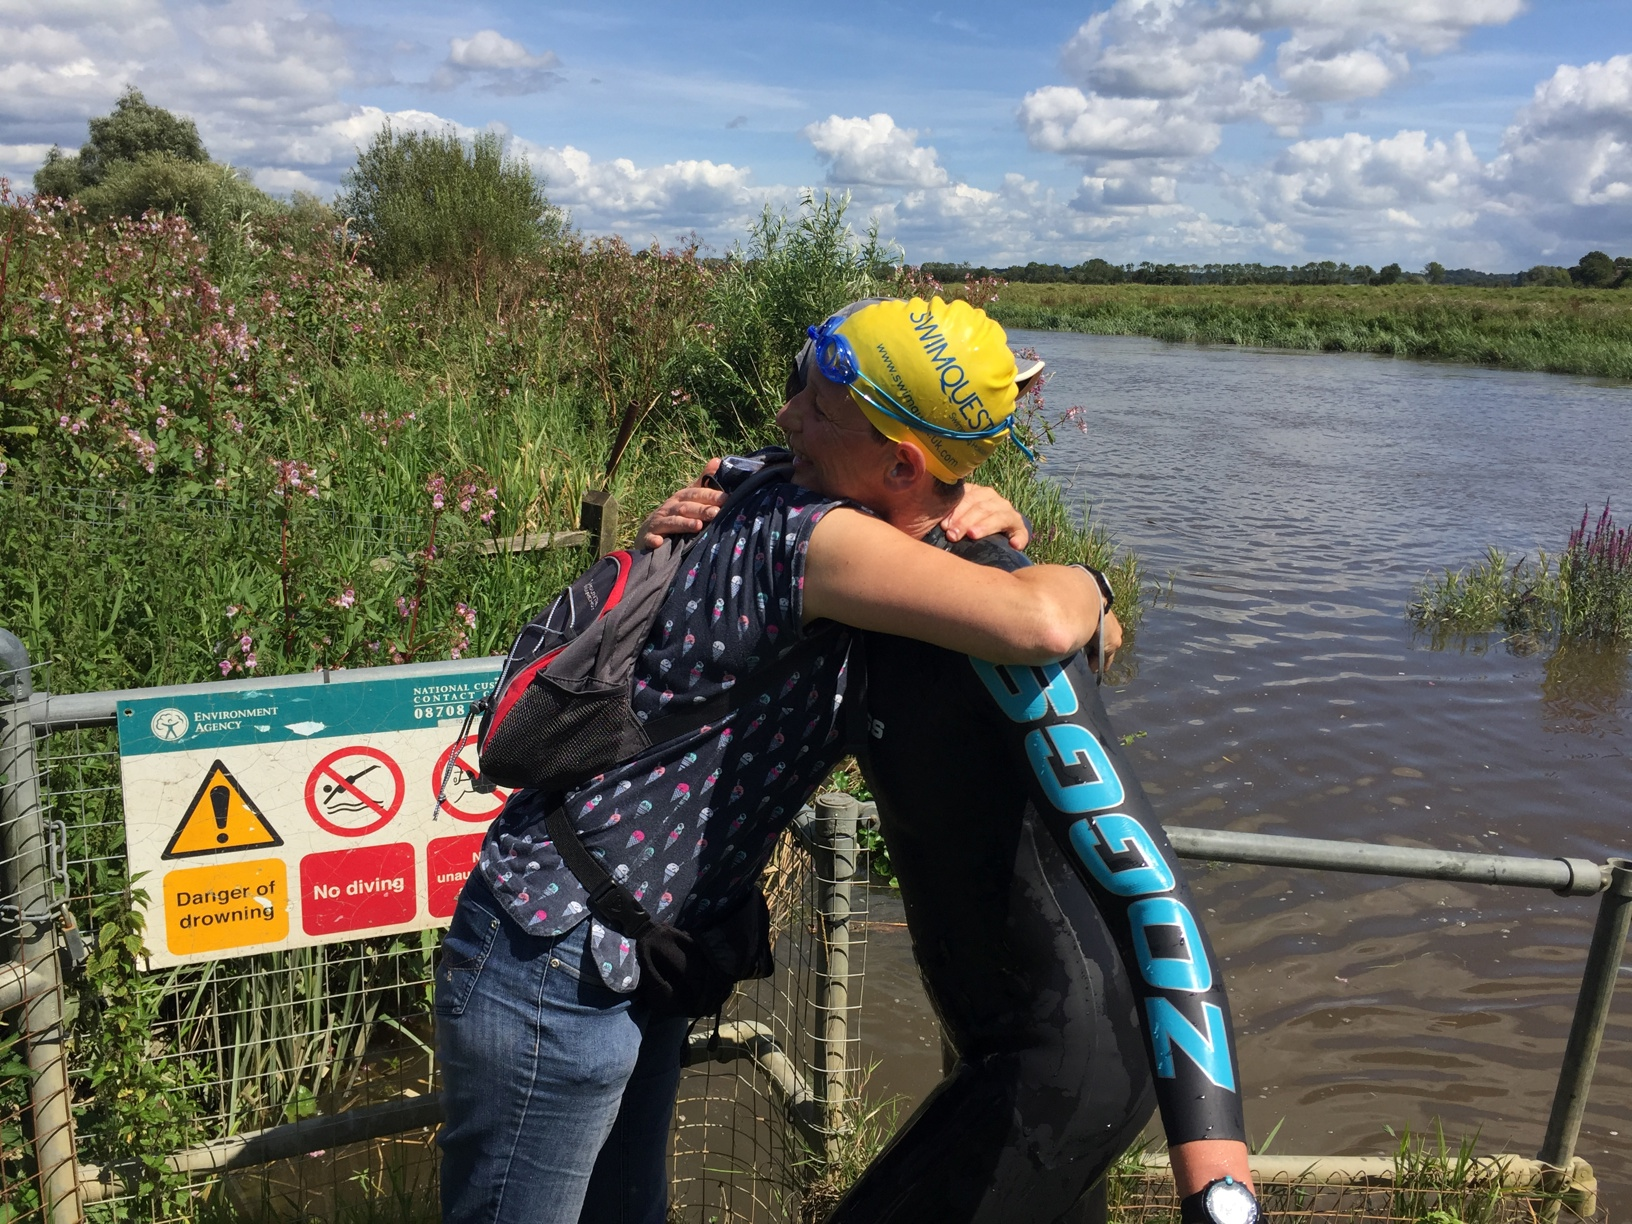 Swimmer embracing a friend after river swim